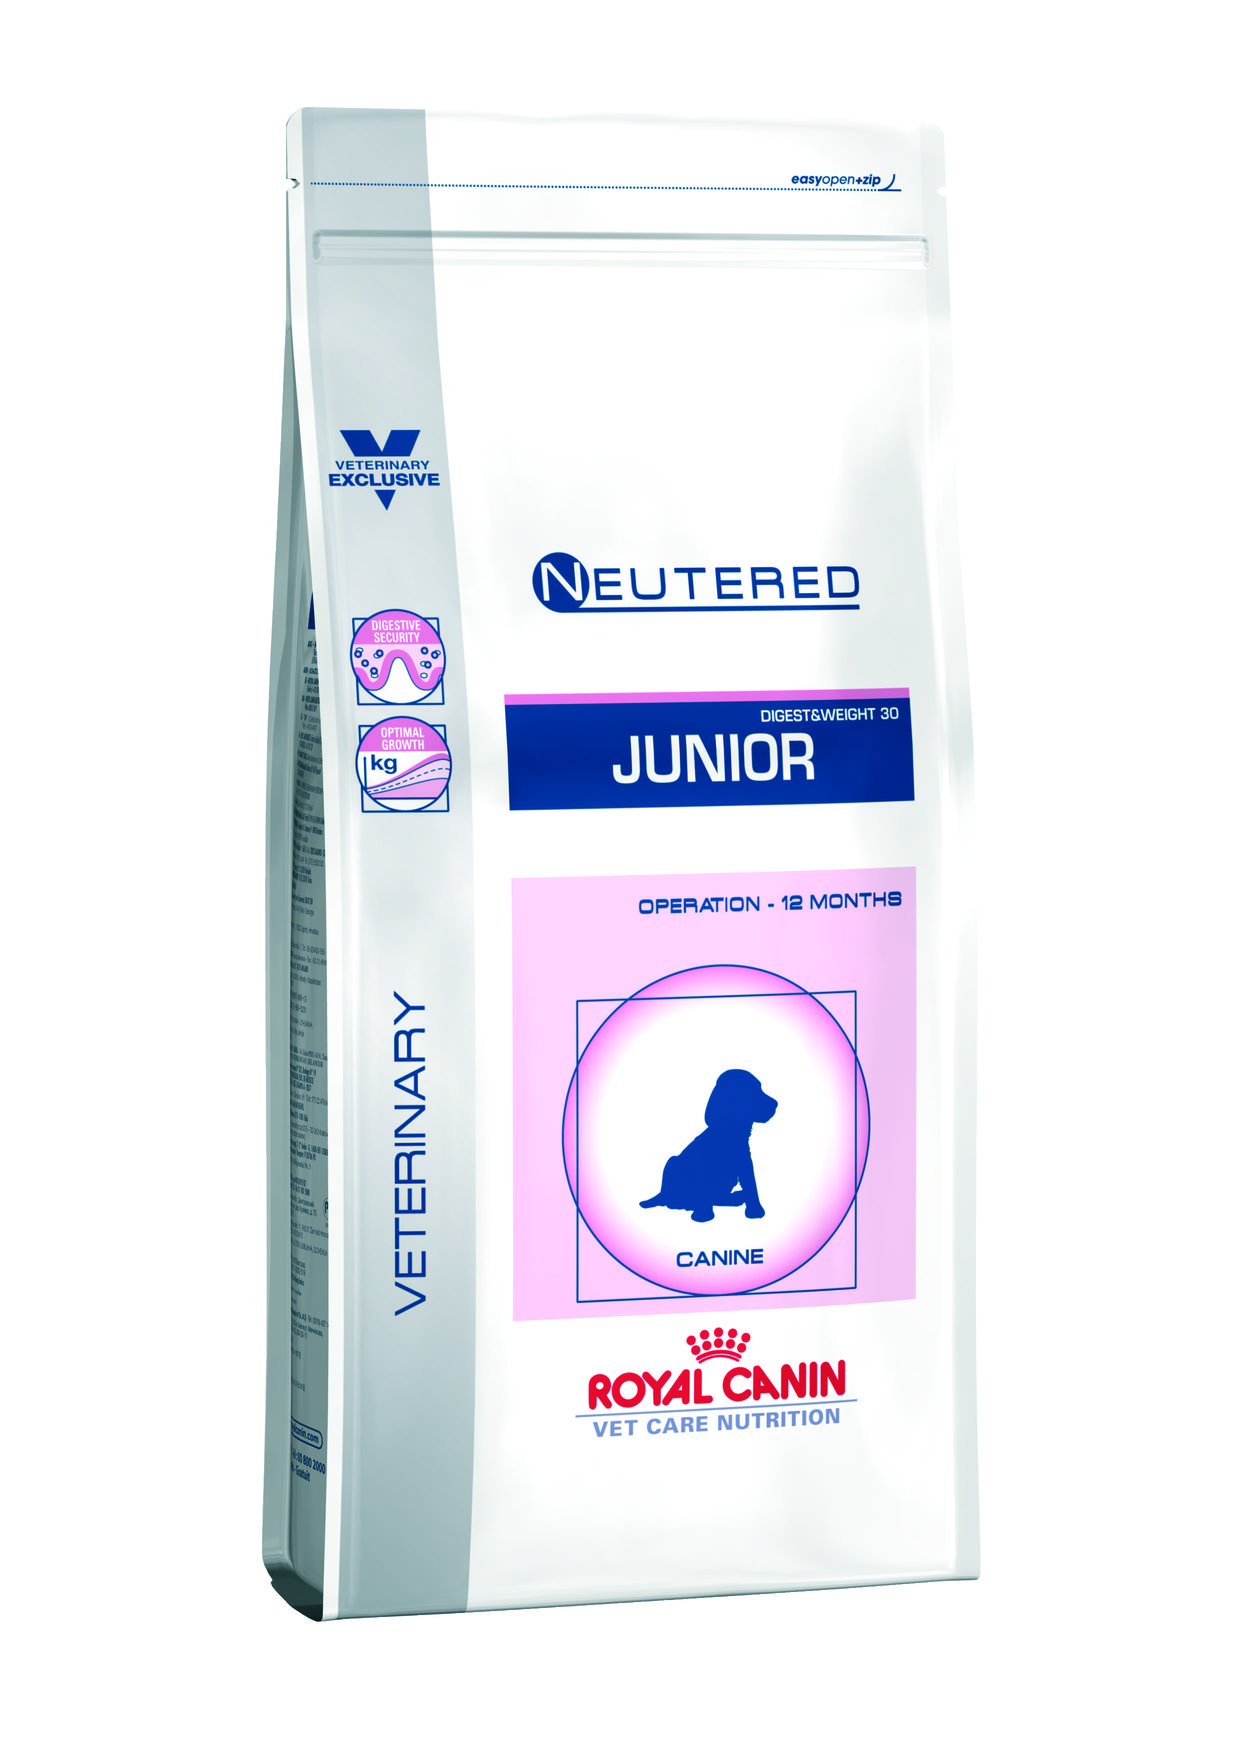 chiiots 12 mois royal canin alimentation pediatrique